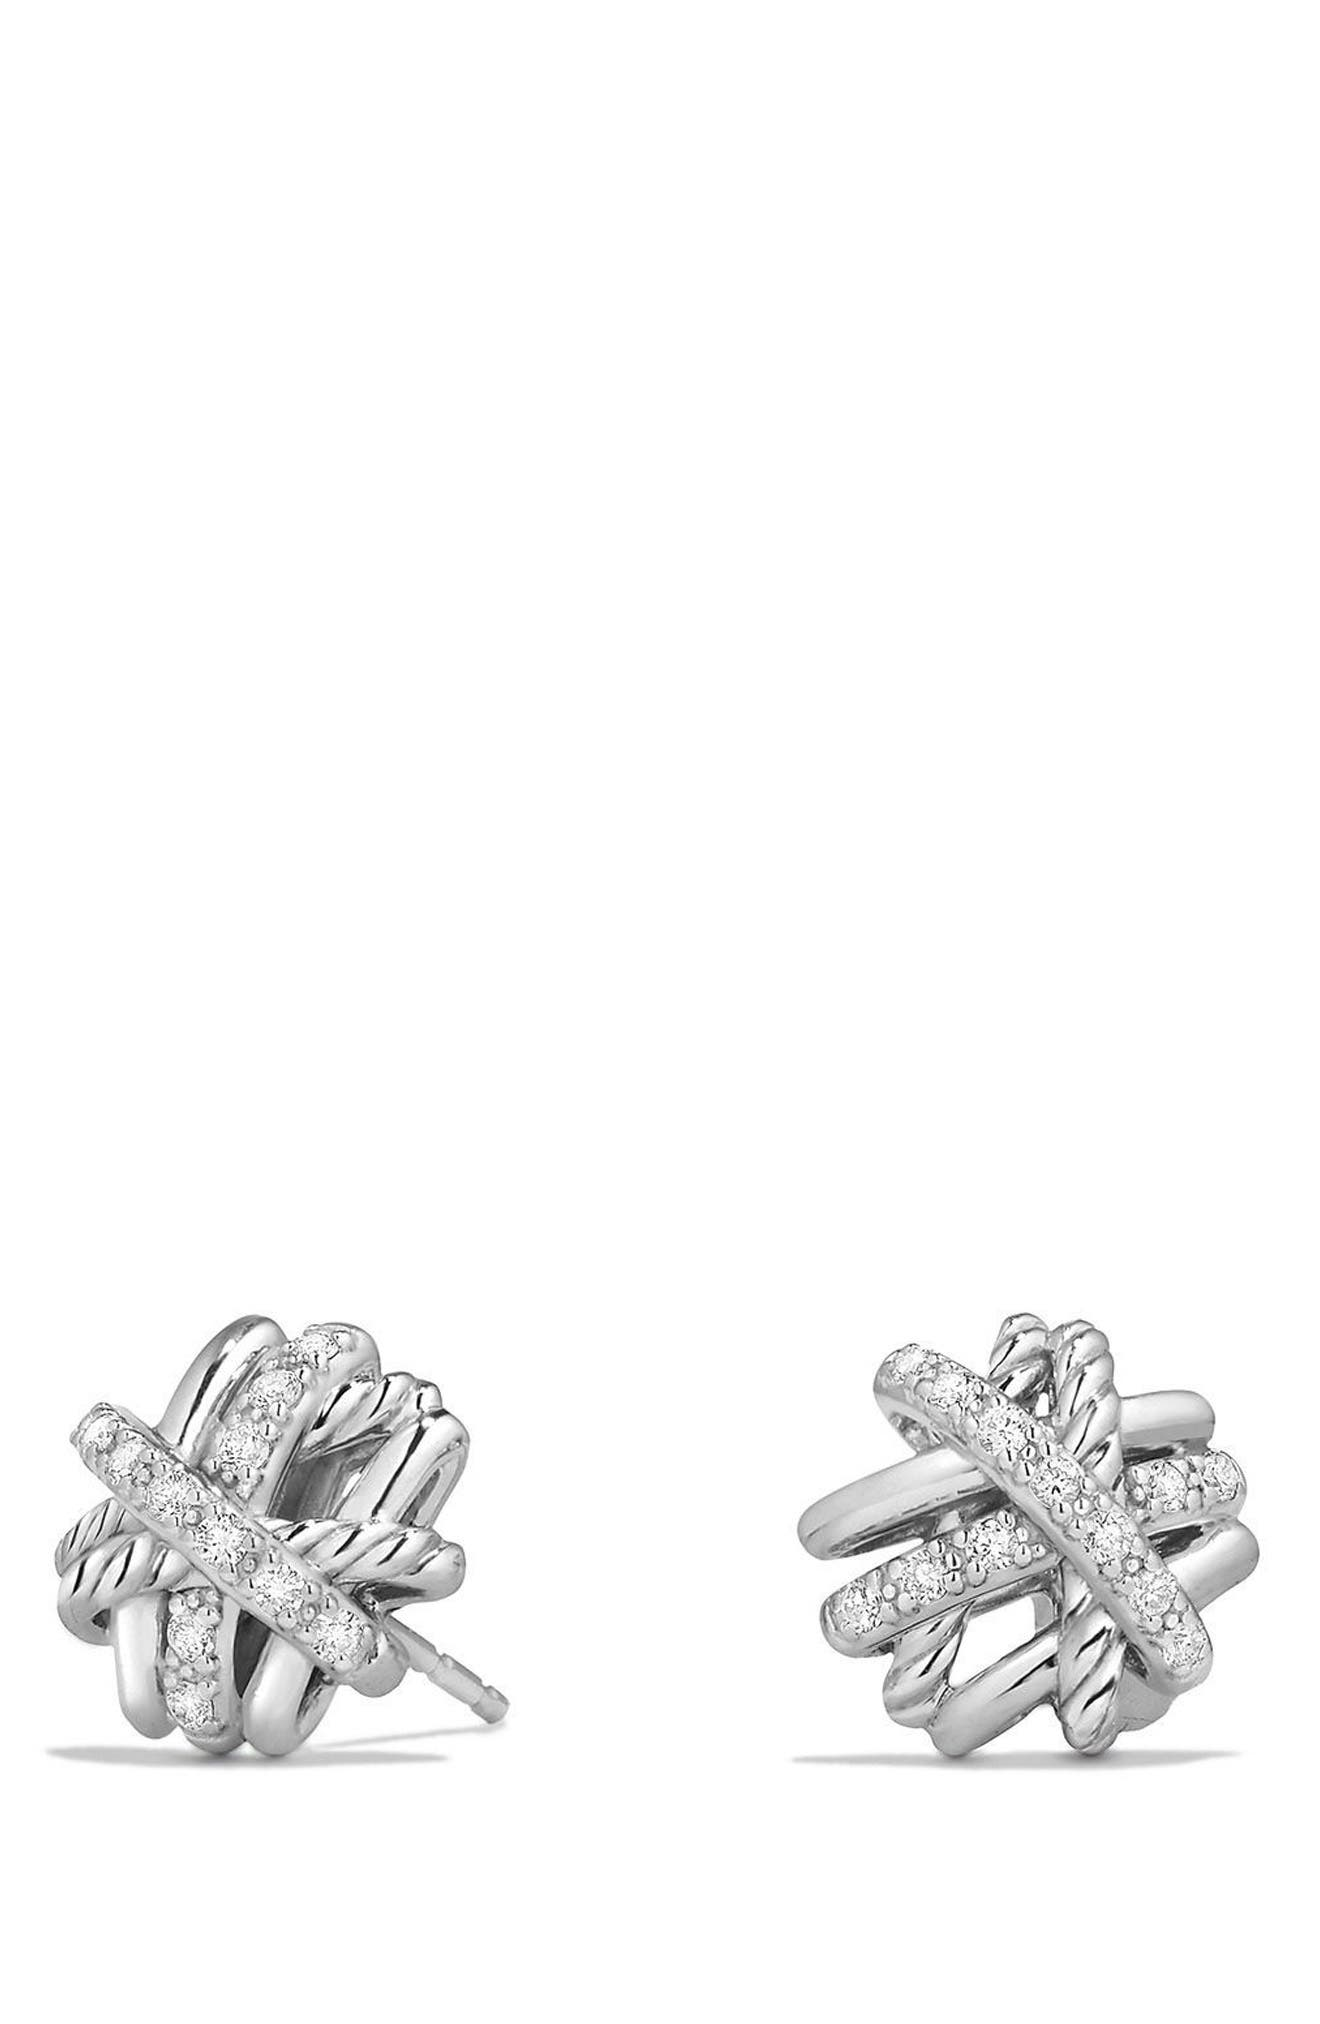 Crossover Stud Earrings with Diamonds,                         Main,                         color, Silver/ Gold